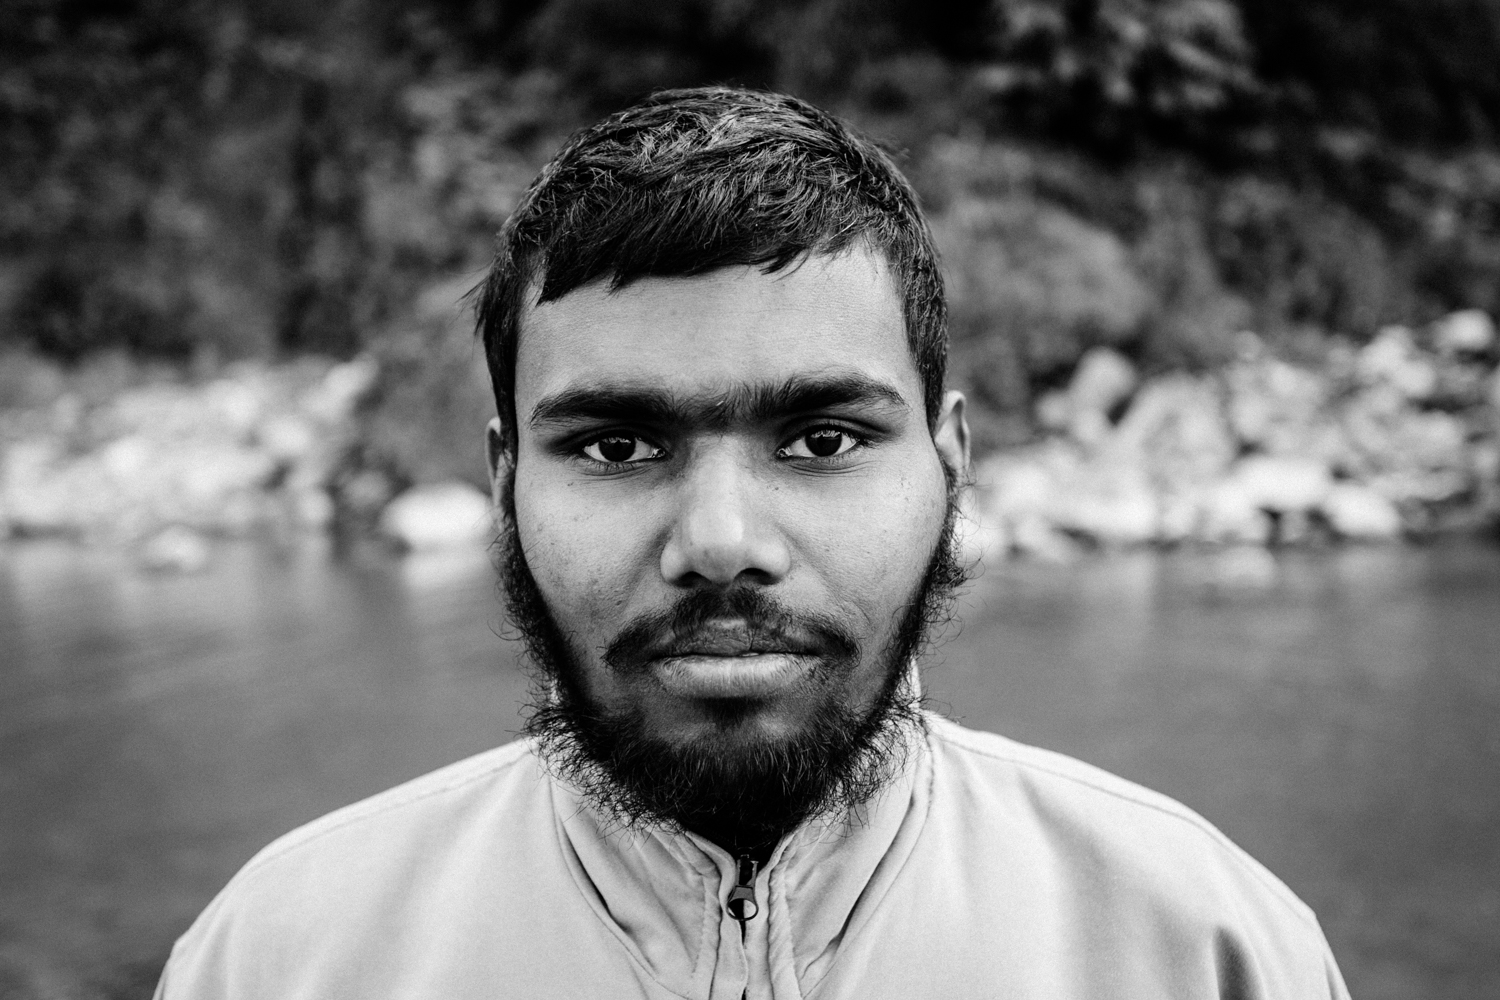 """This 21-year old lives in a tent on the banks of the Ganges in Rishikesh. He is a yogi and, from what I could understand from his limited English, aspires to become a Sandhu (a Hindu monk or """"holy man"""").I photographed him near his abode."""